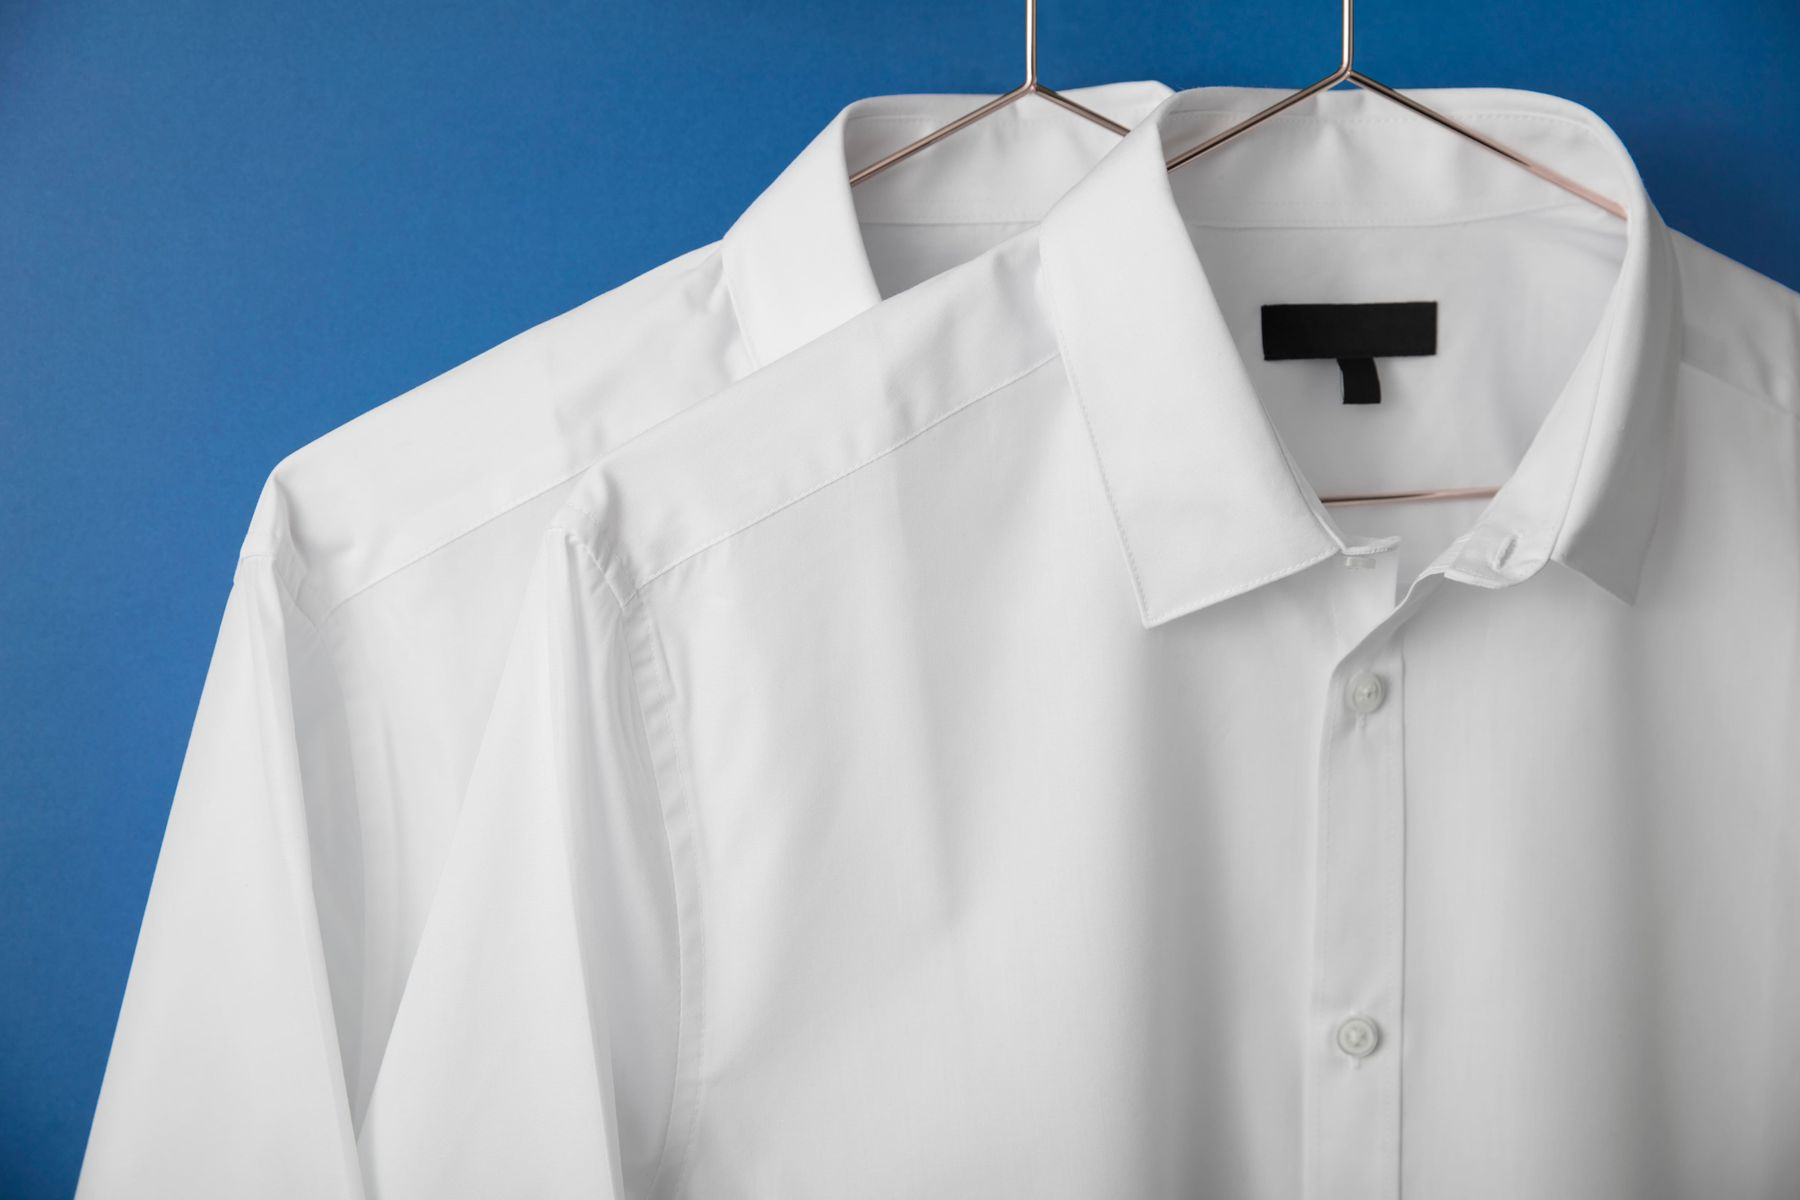 white shirts on hangers